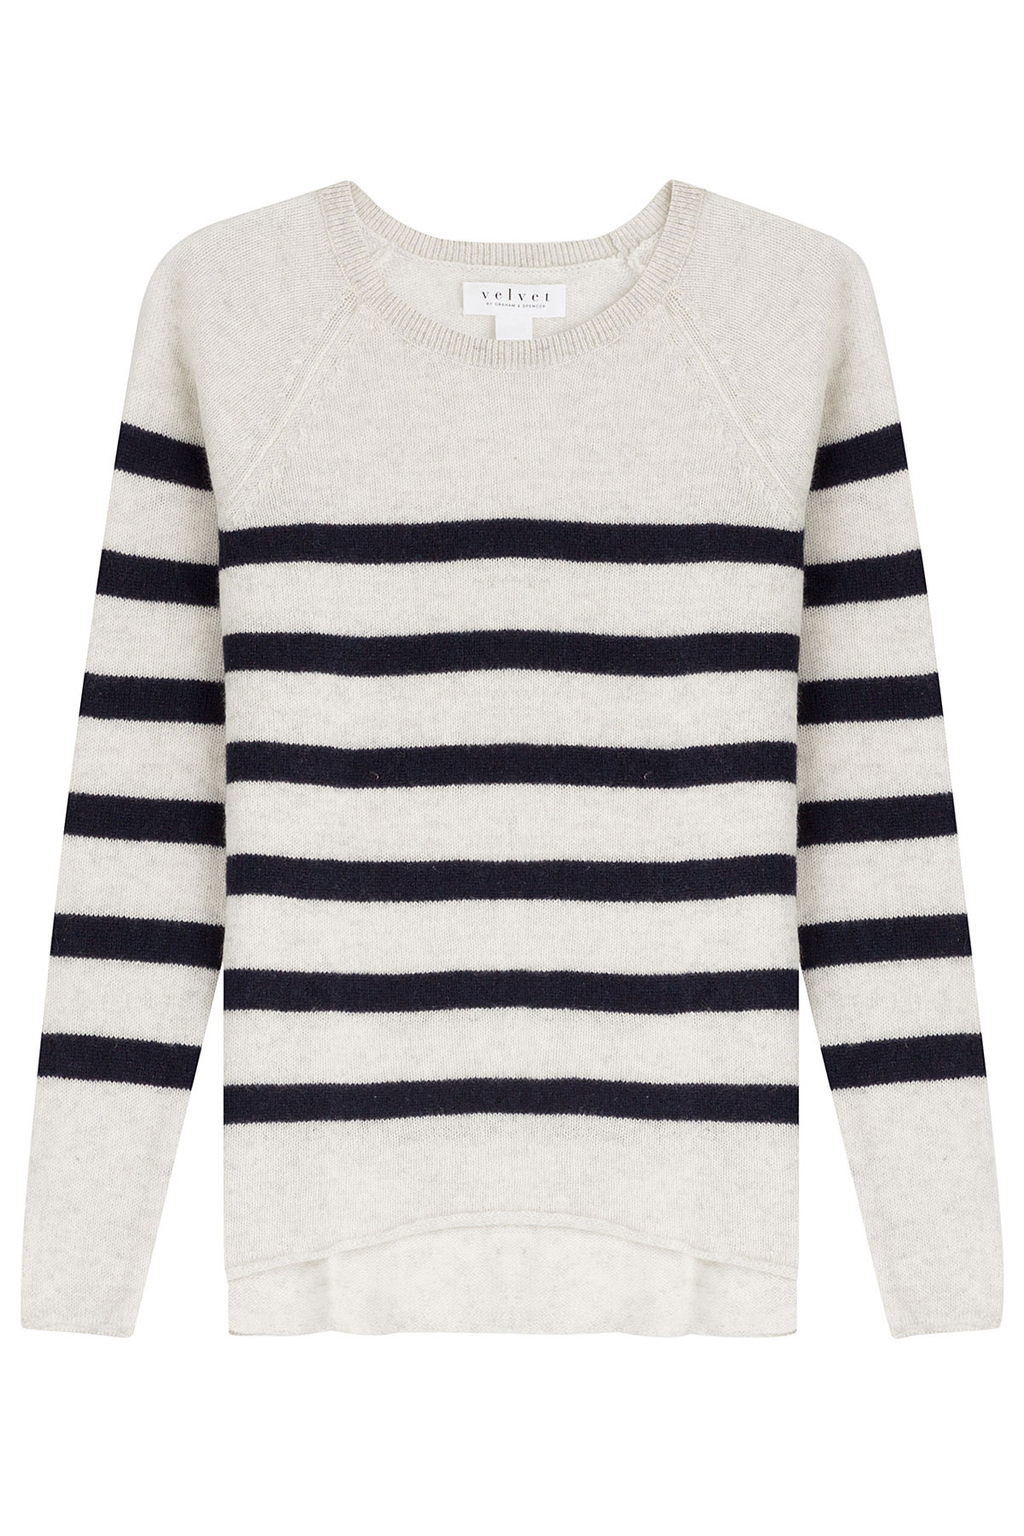 Striped Cashmere Pullover Stripes - neckline: round neck; pattern: horizontal stripes; style: standard; predominant colour: ivory/cream; secondary colour: navy; occasions: casual, creative work; length: standard; fit: standard fit; fibres: cashmere - 100%; sleeve length: long sleeve; sleeve style: standard; texture group: knits/crochet; pattern type: knitted - fine stitch; pattern size: standard; season: s/s 2016; wardrobe: highlight